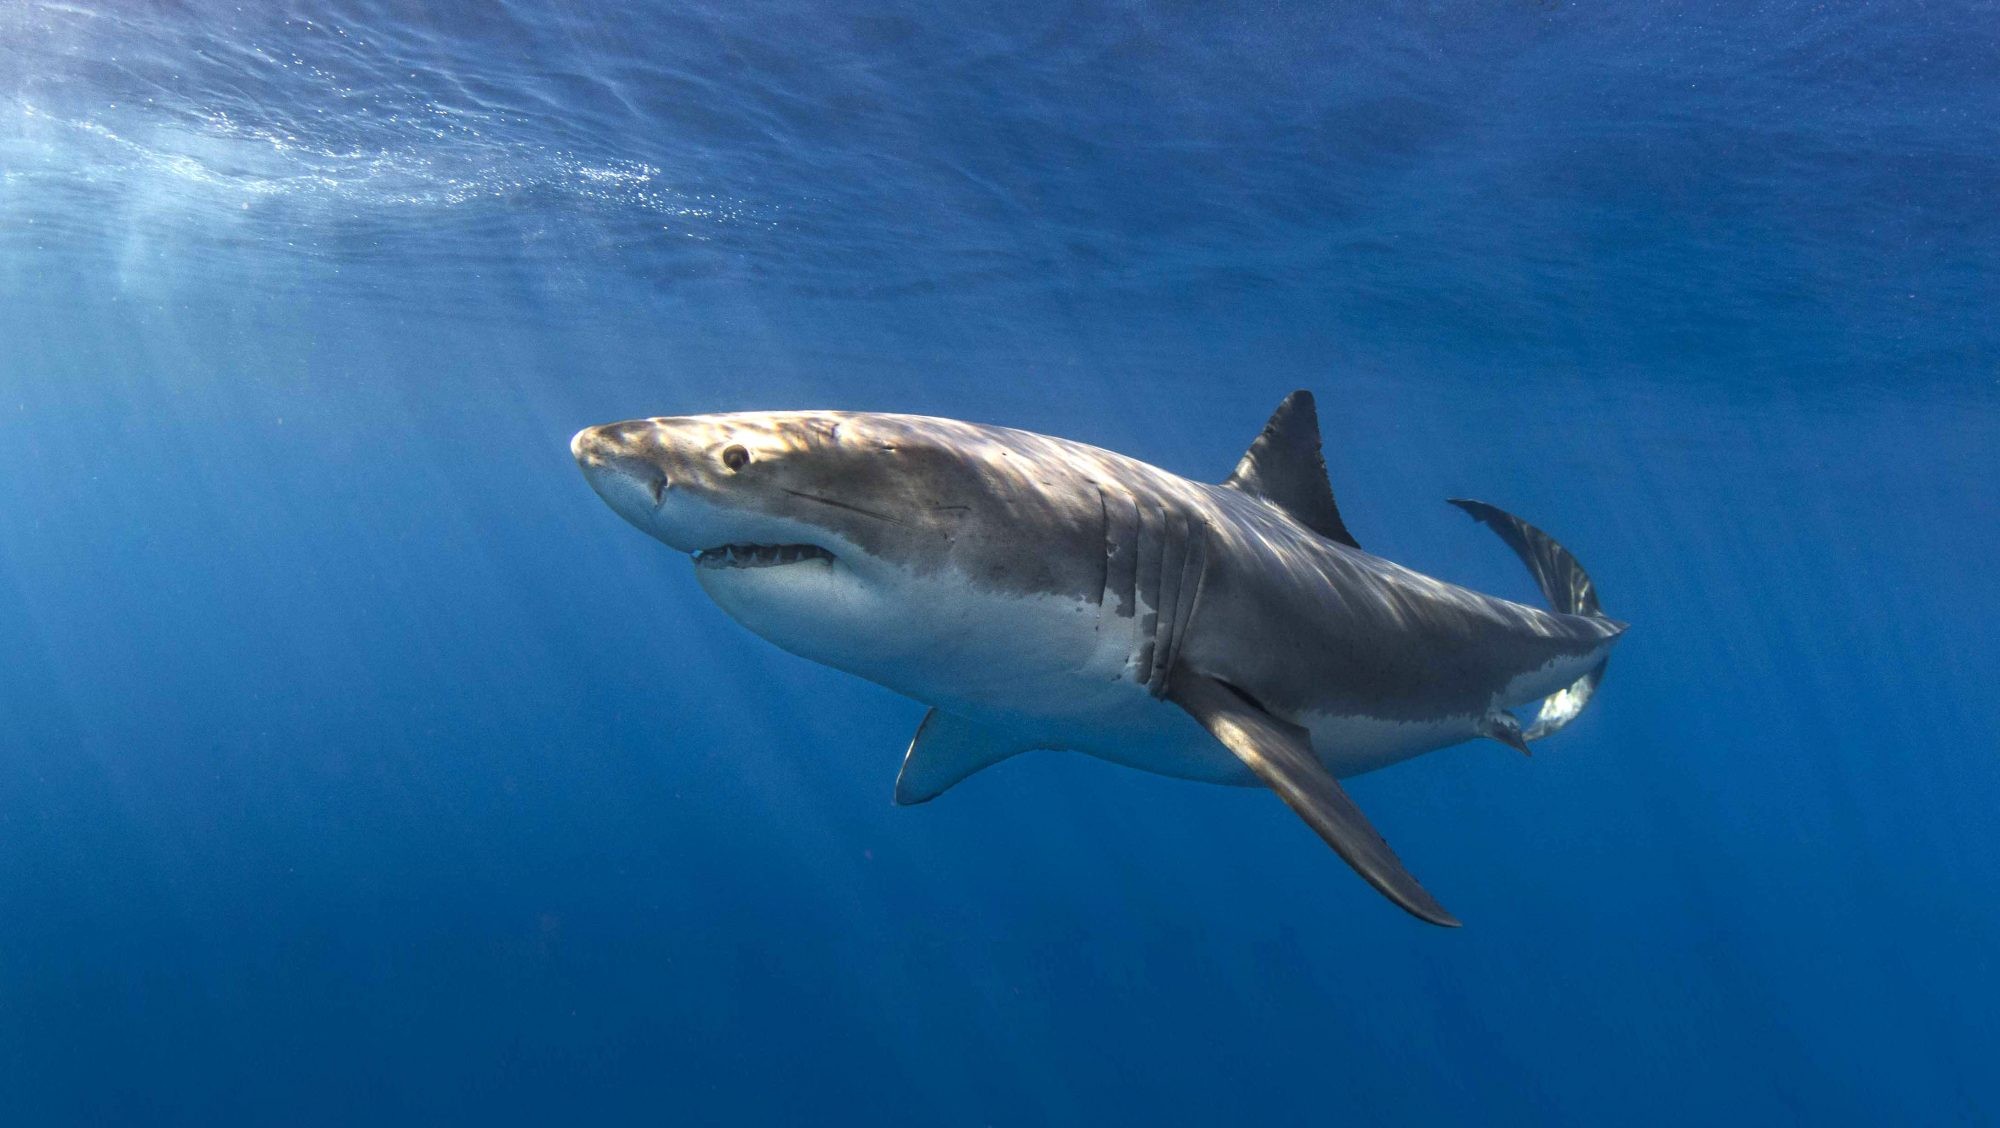 Great White Shark, Photo by Craig Dietrich